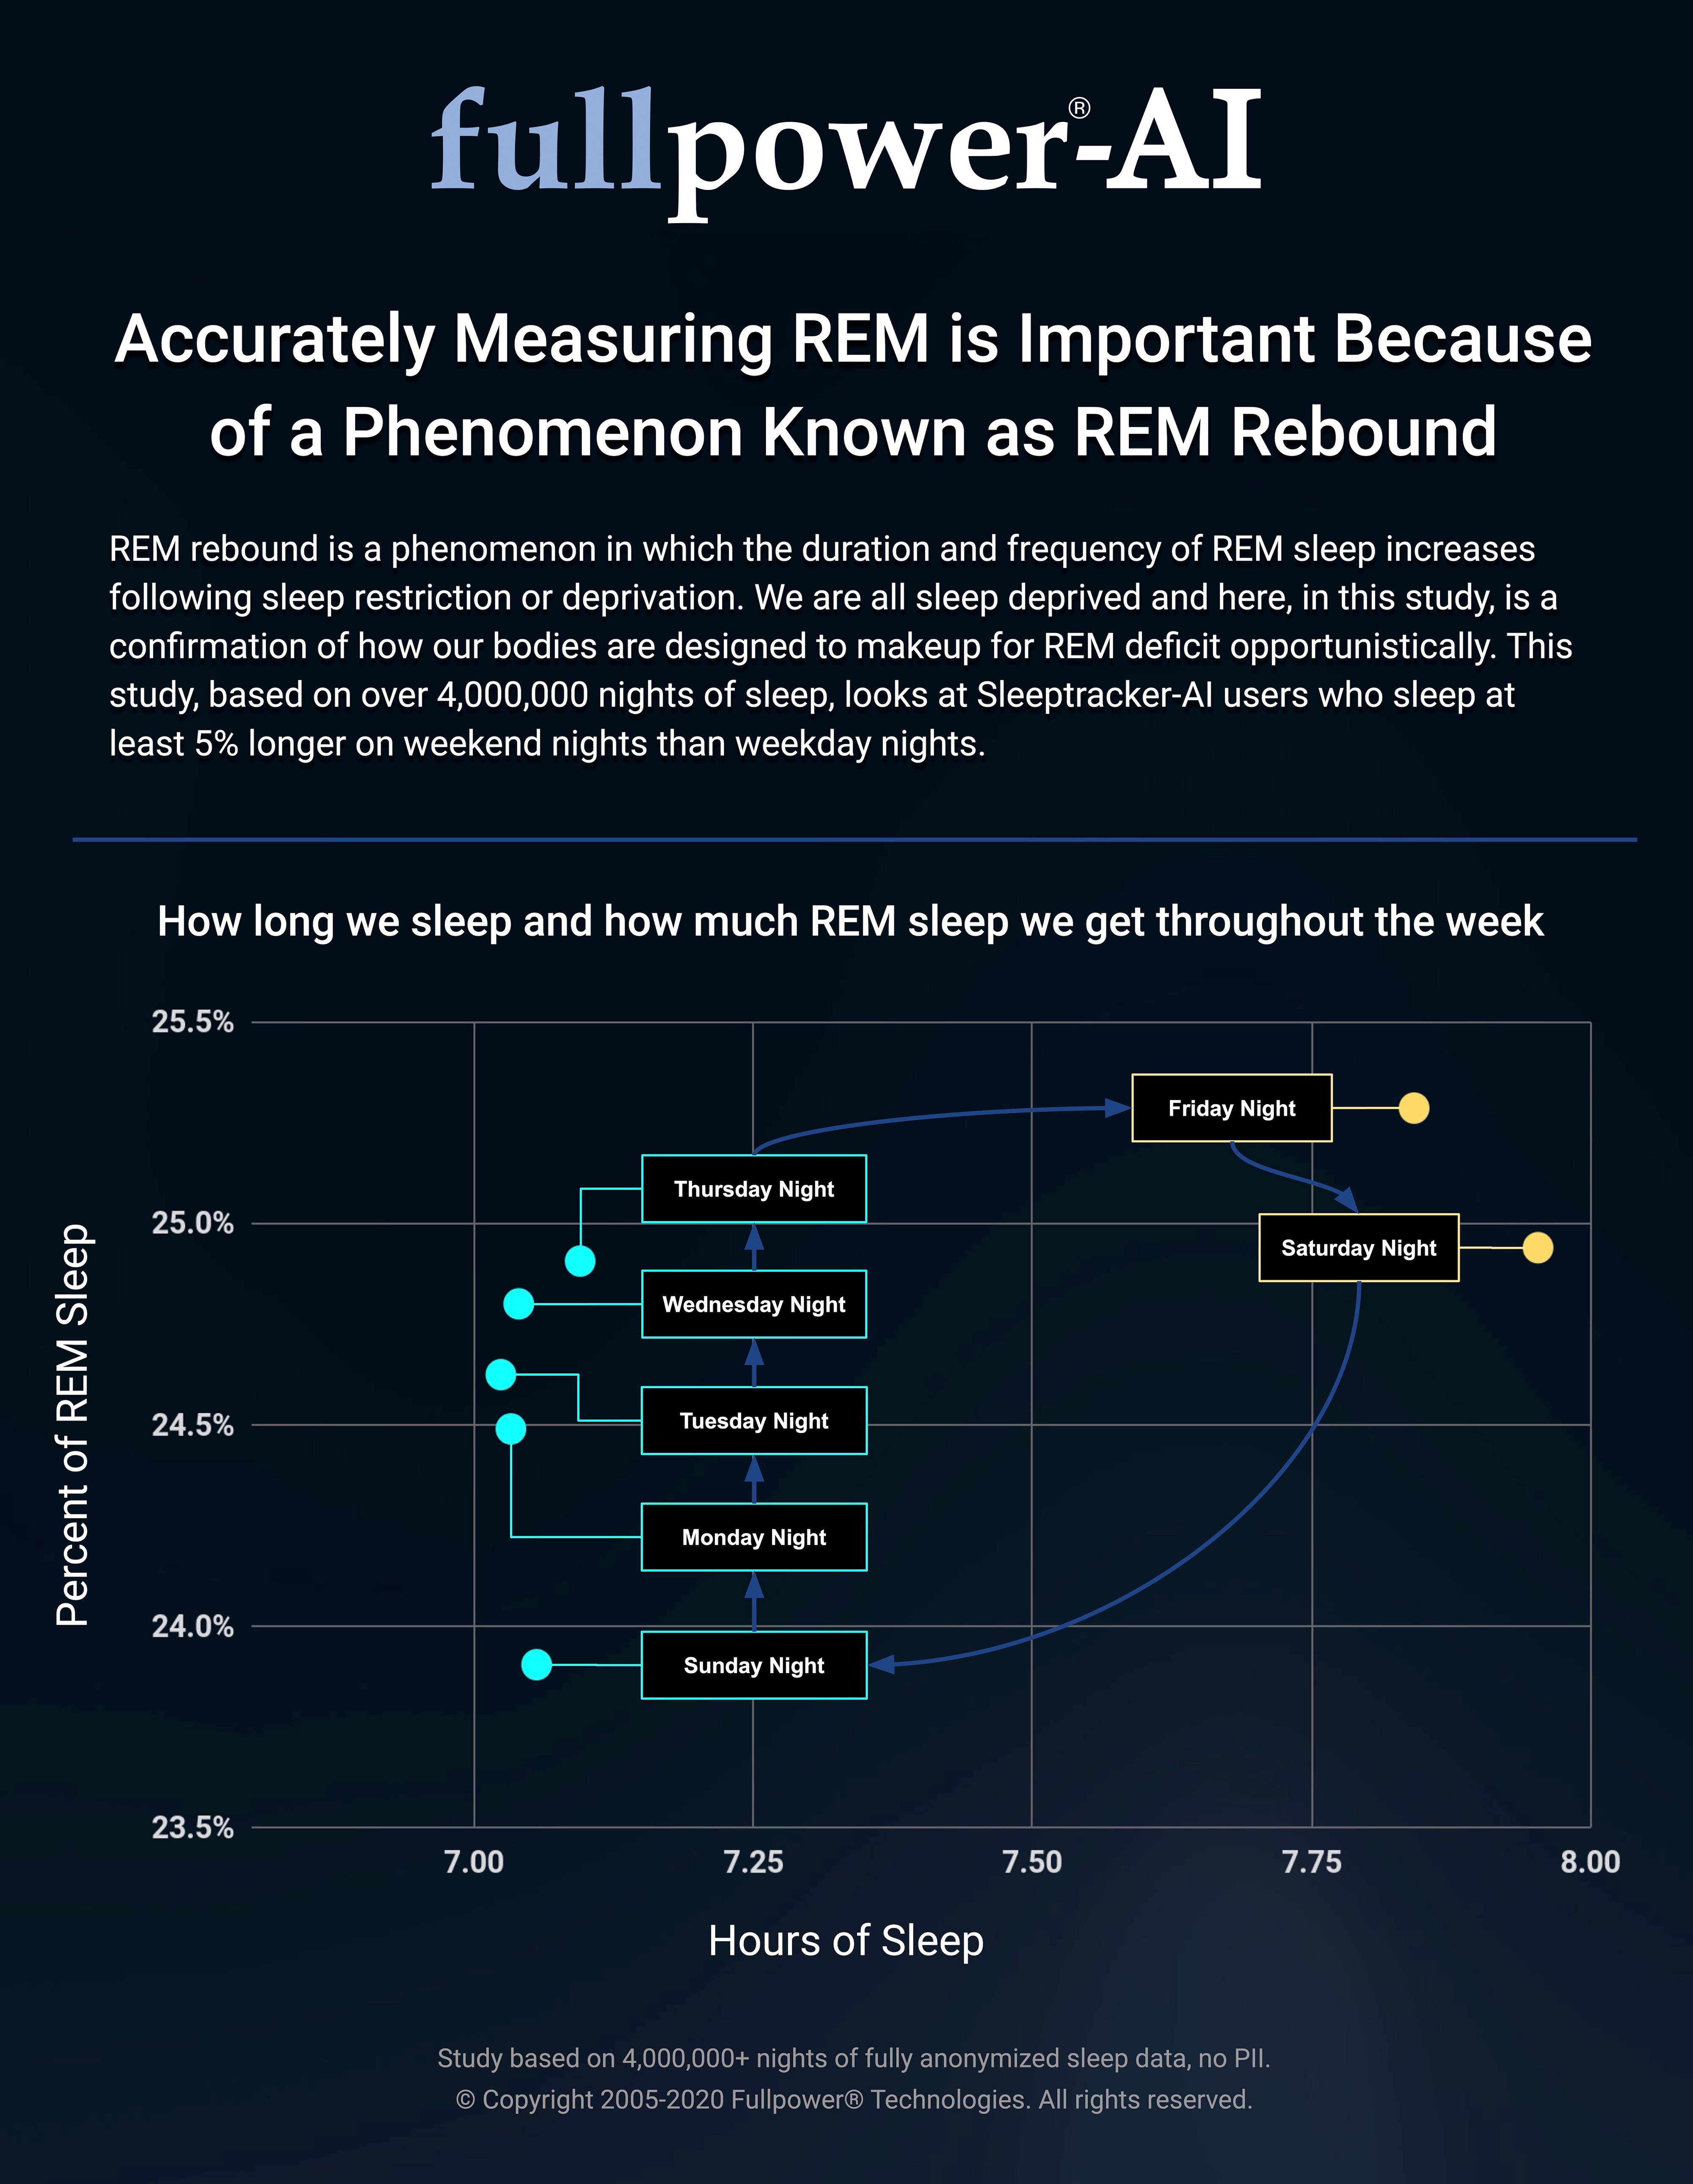 accurately-measuring-rem-is-important-because-of-a-phenomenon-known-as-rem-rebound